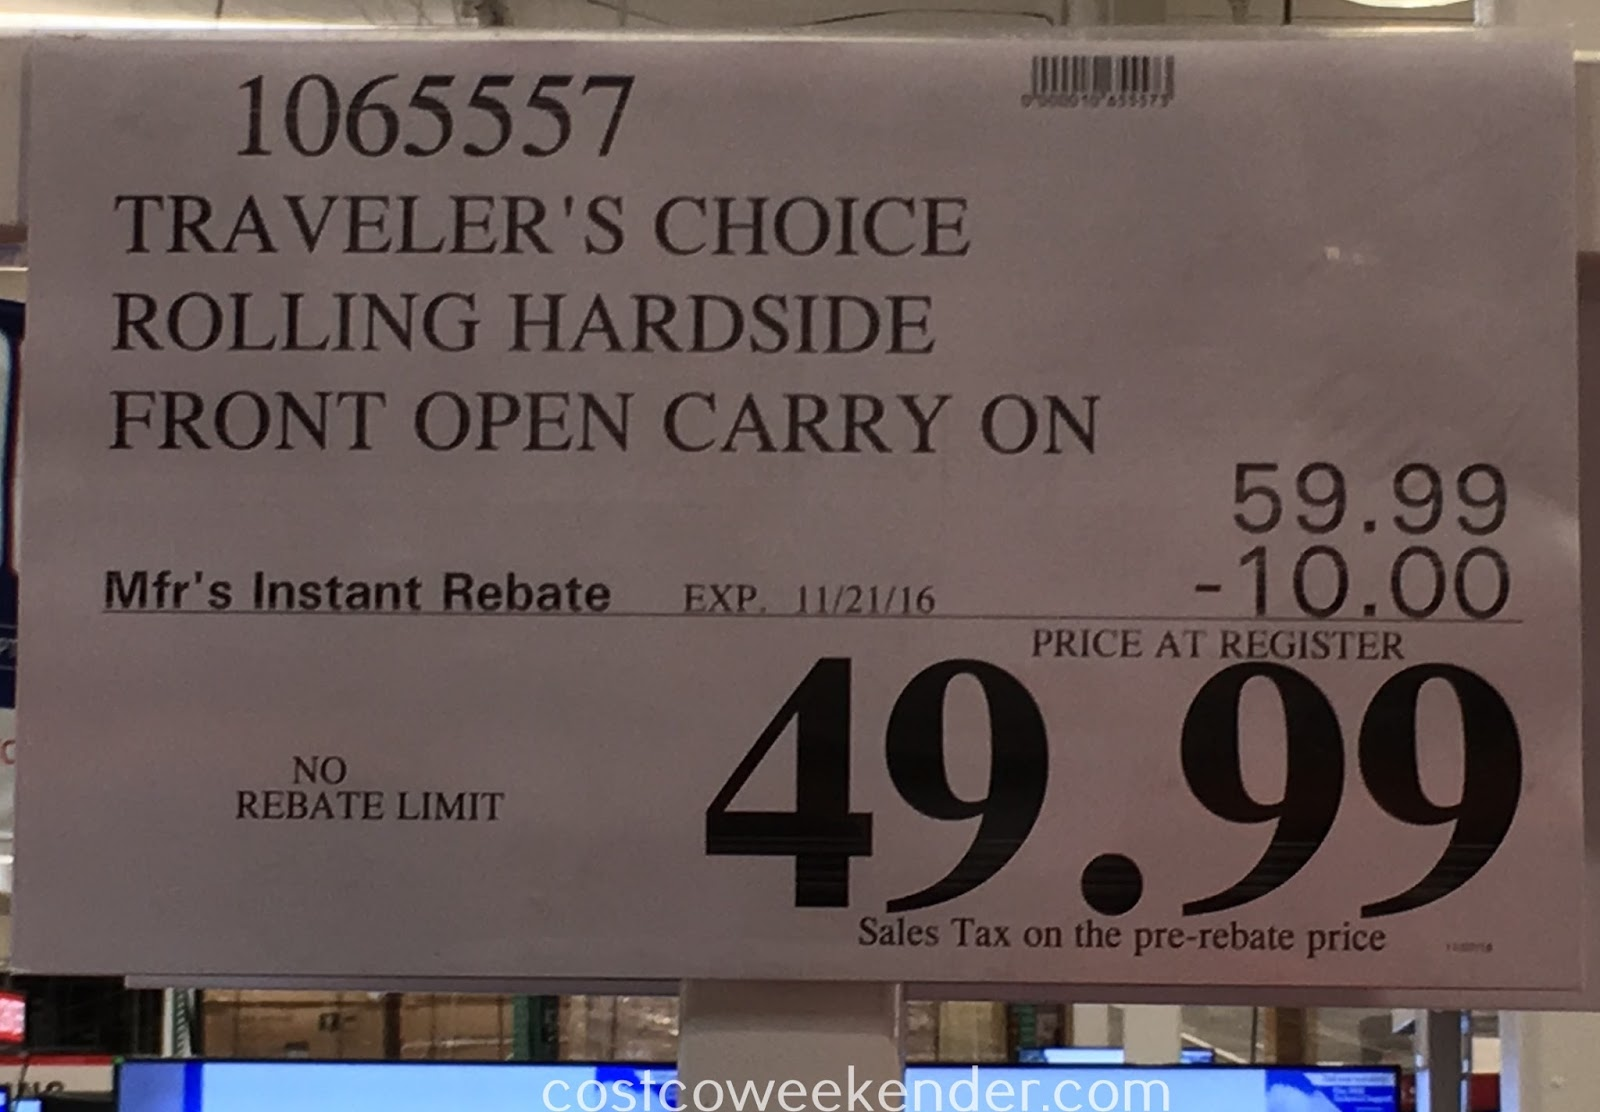 Costco 1065557 - Deal for the Traveler's Choice Rolling Hardside Front Open Carry-On at Costco